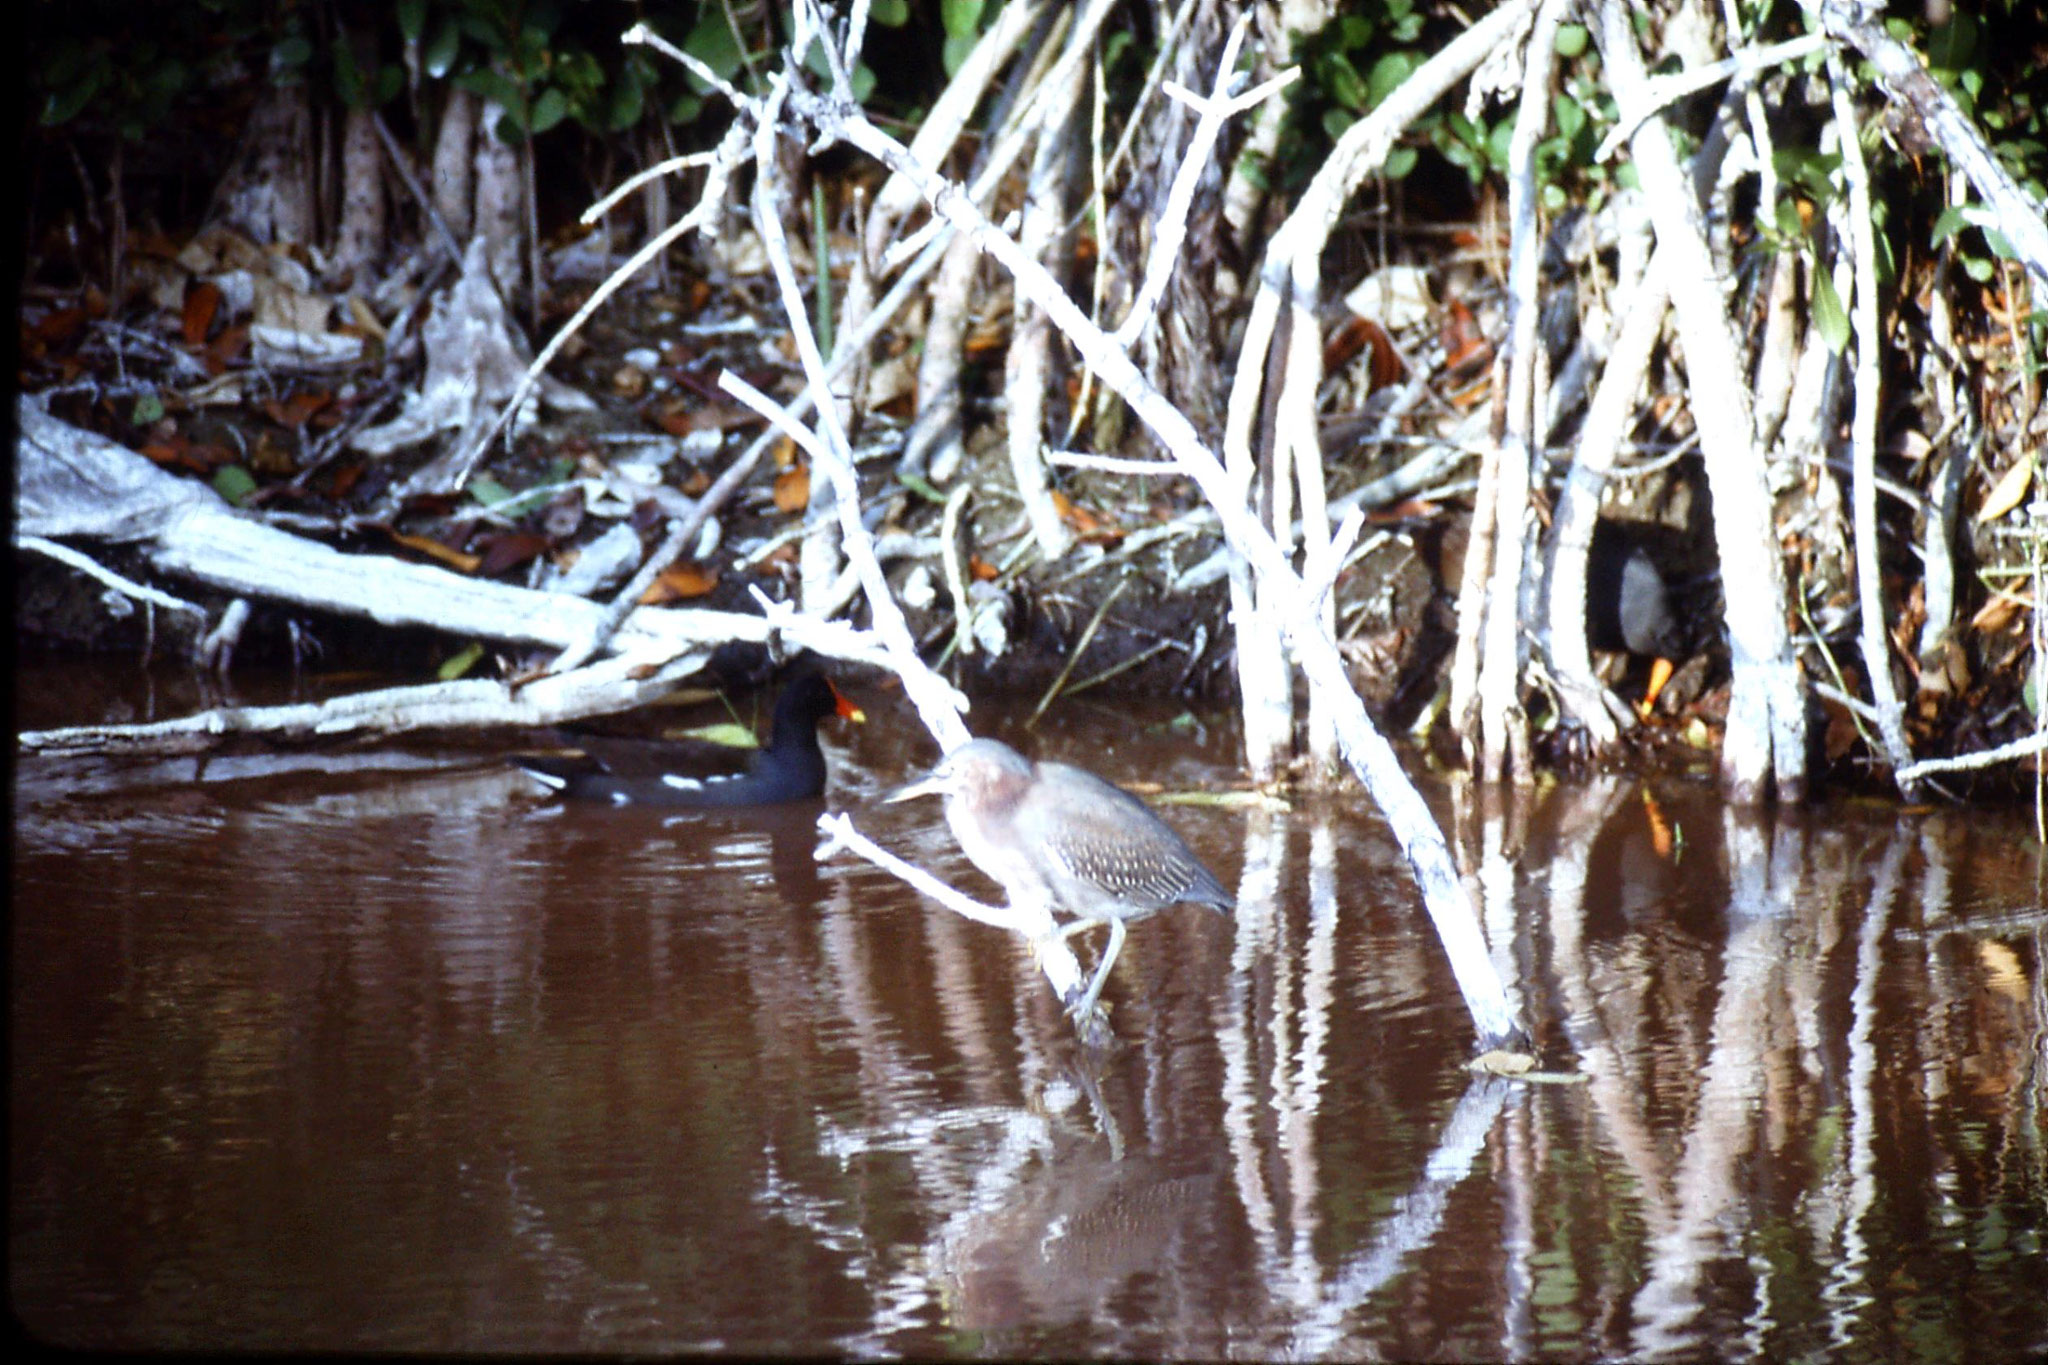 5/1/1991: 28: Little green heron and two common gallinules